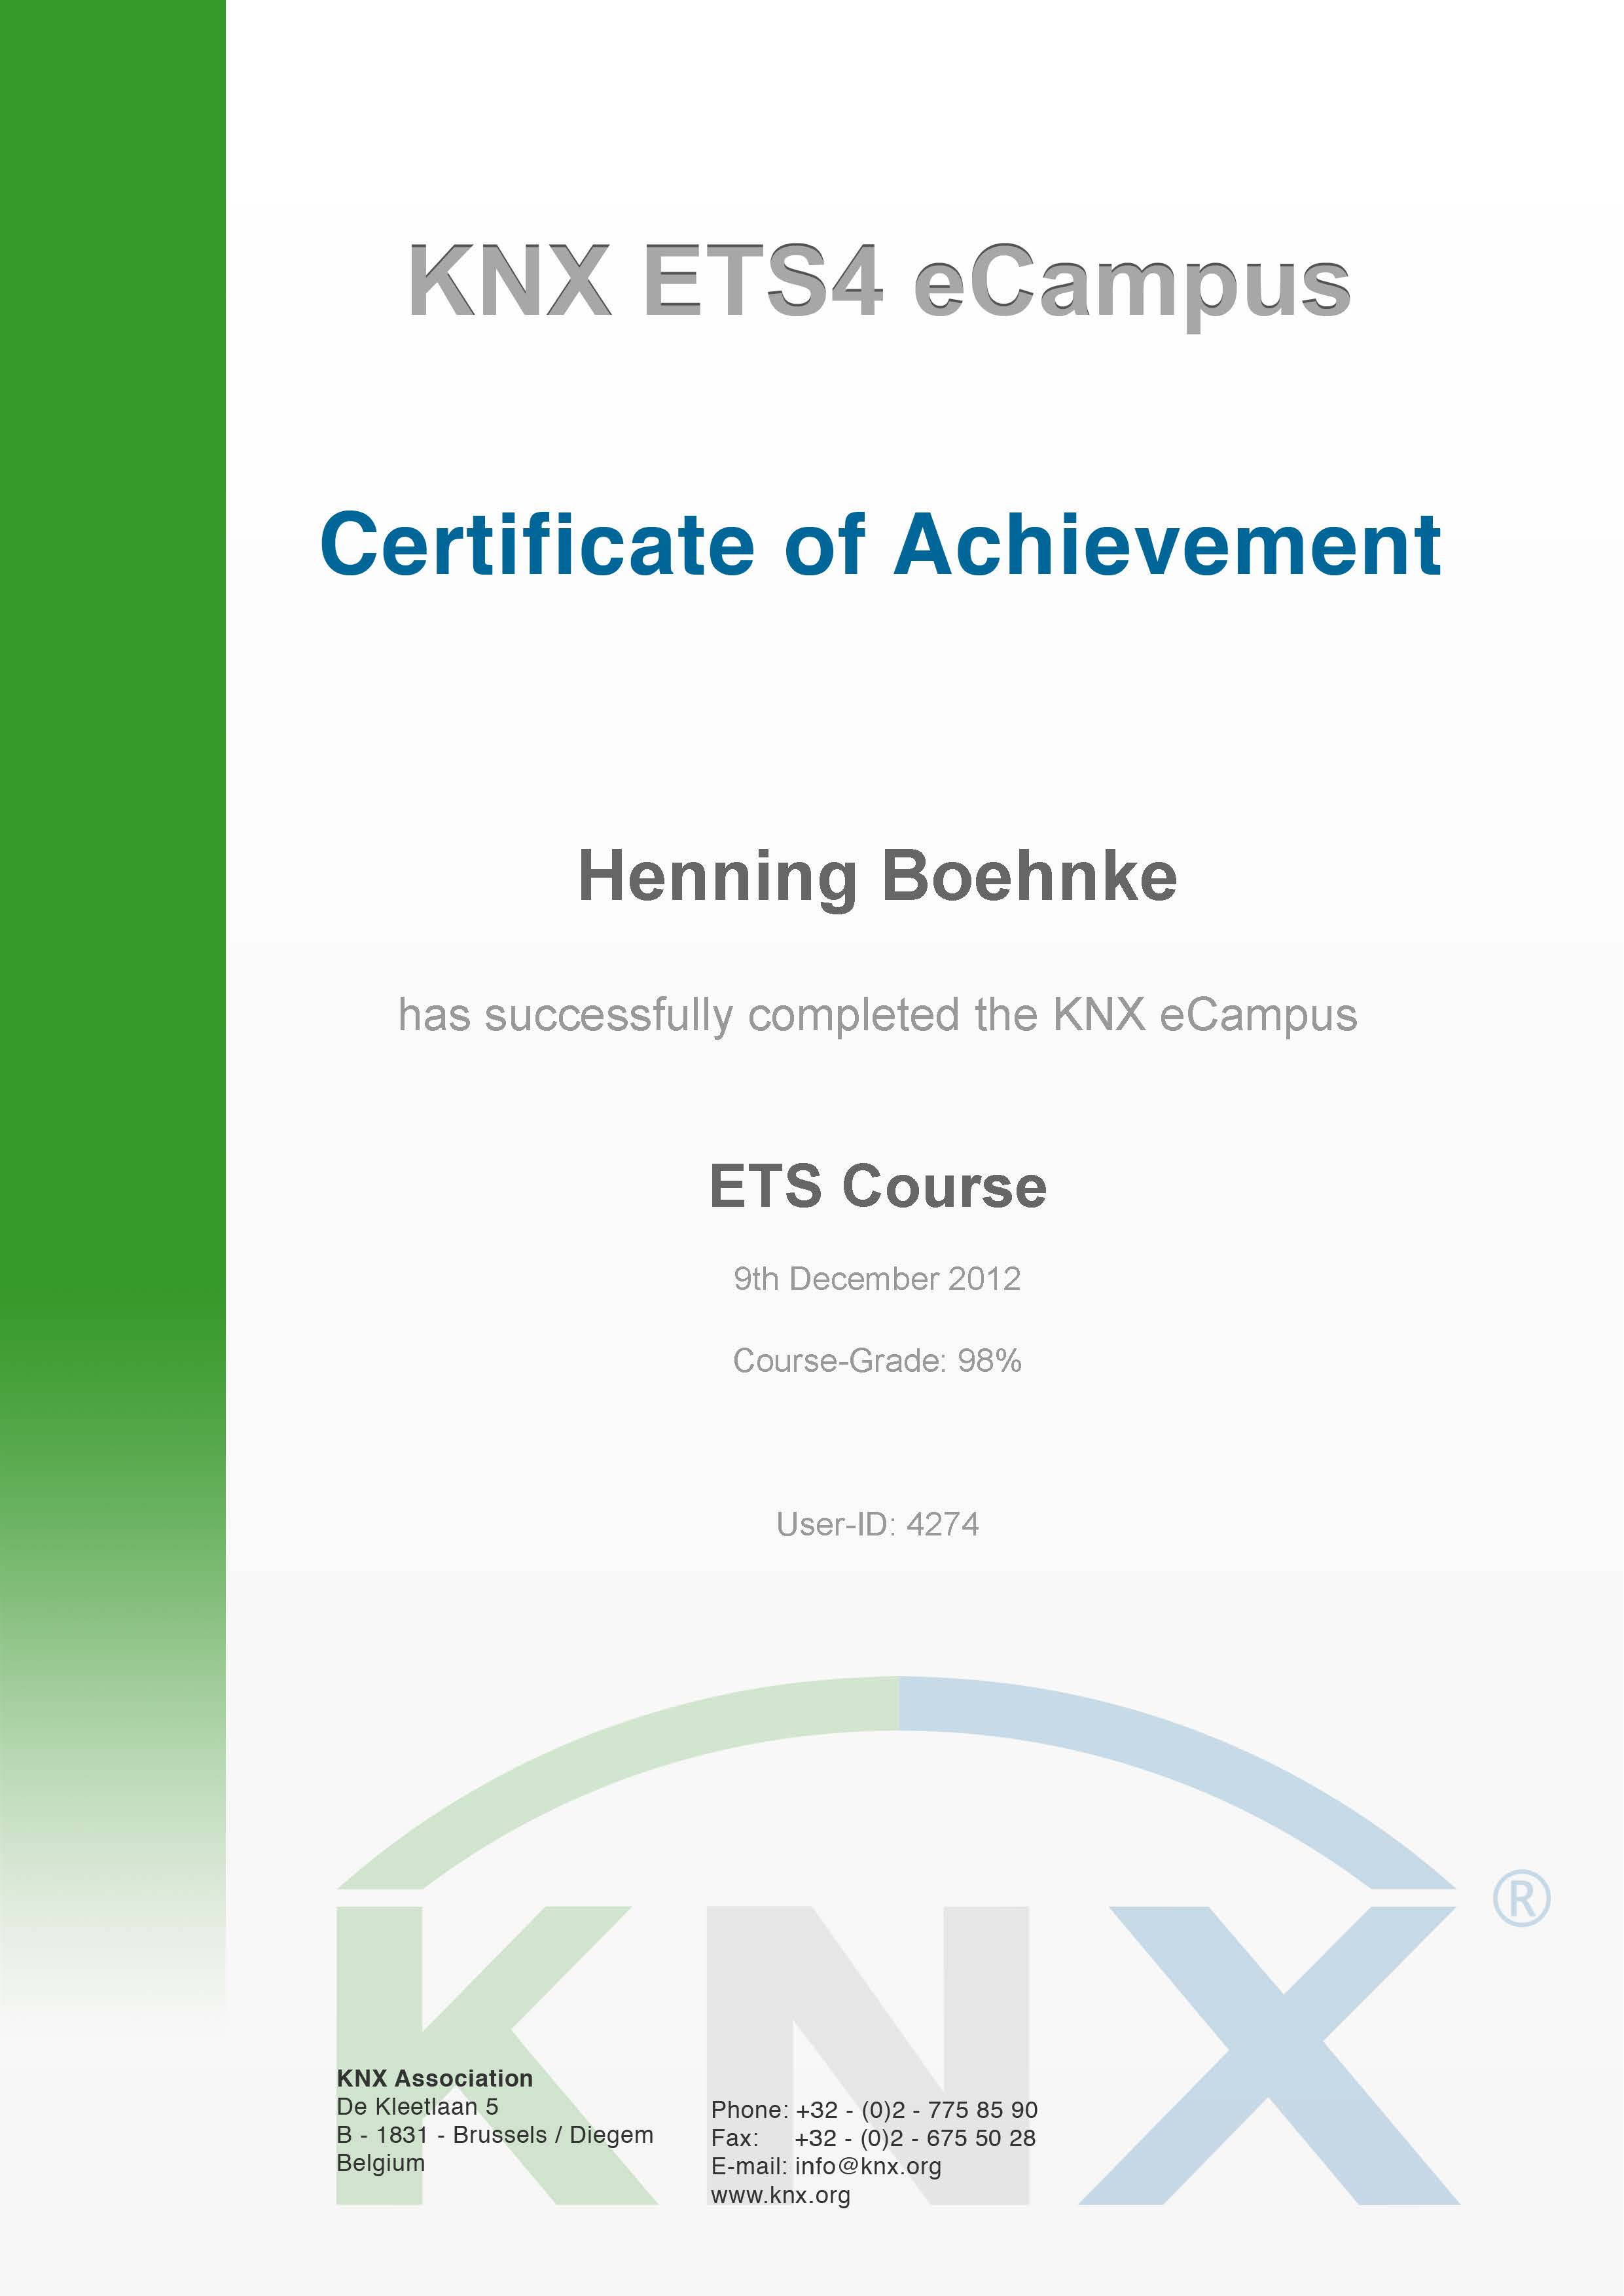 KNX ETS4 Certificate of Archievement